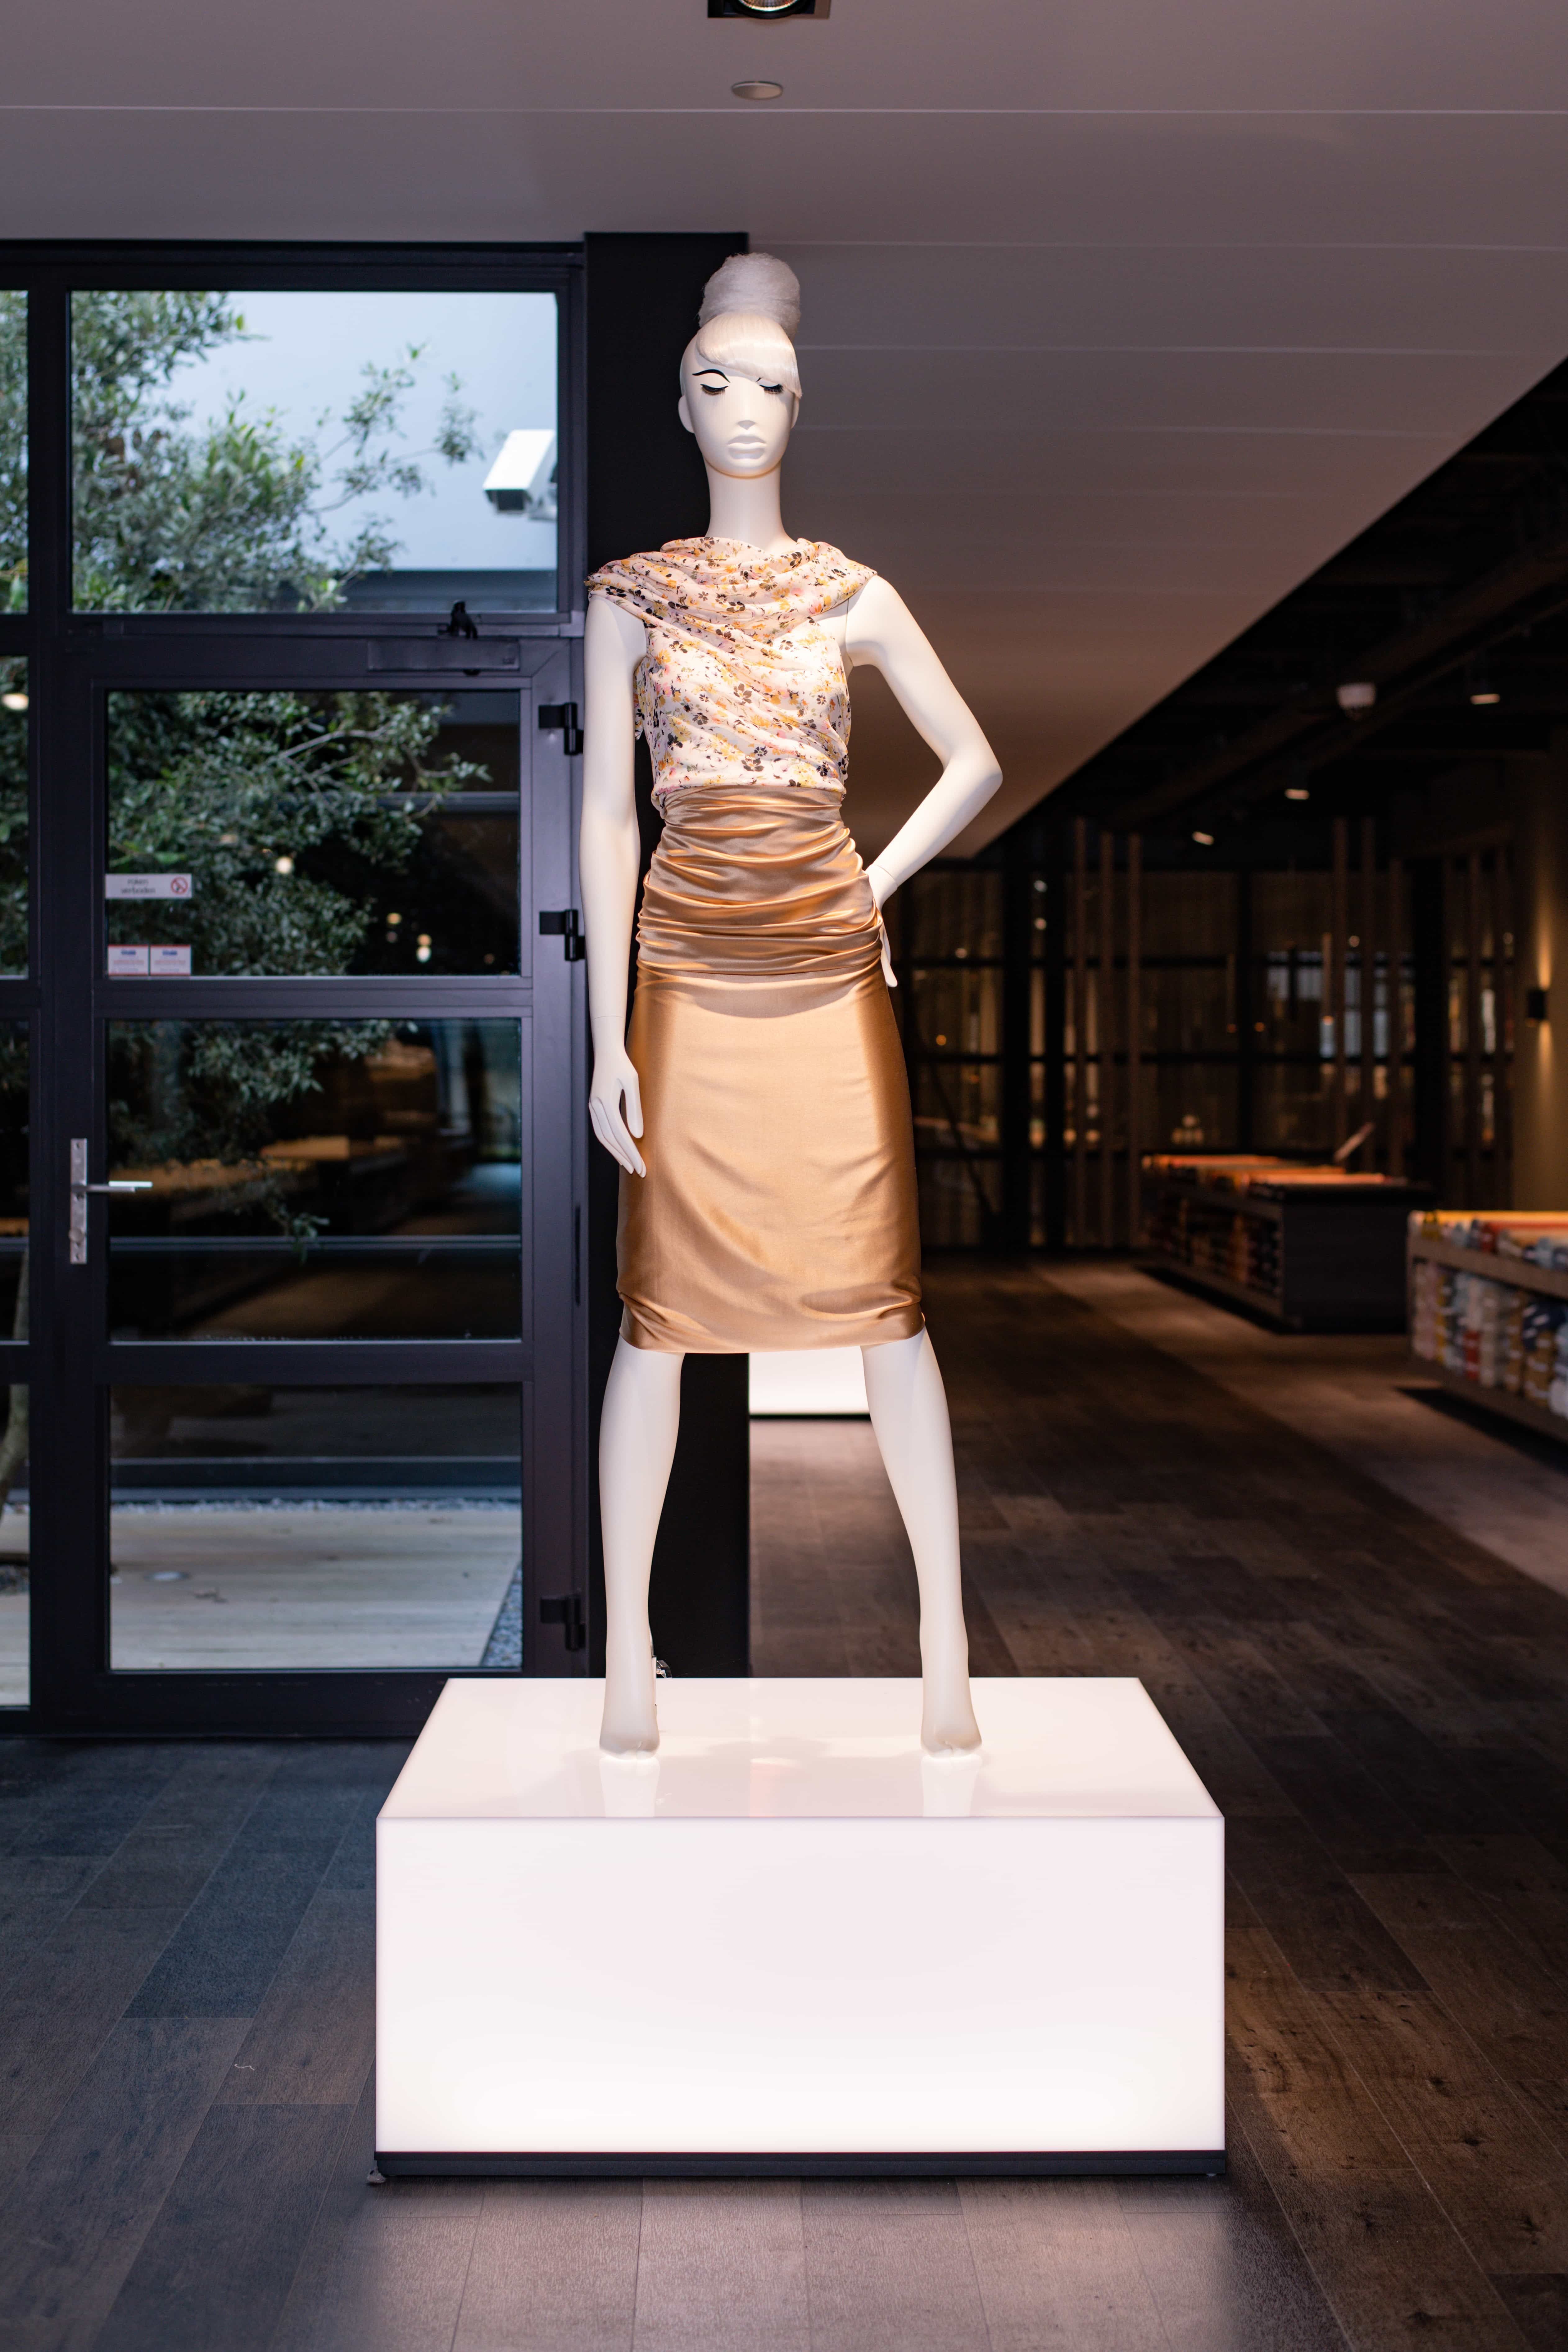 A mannequin standing